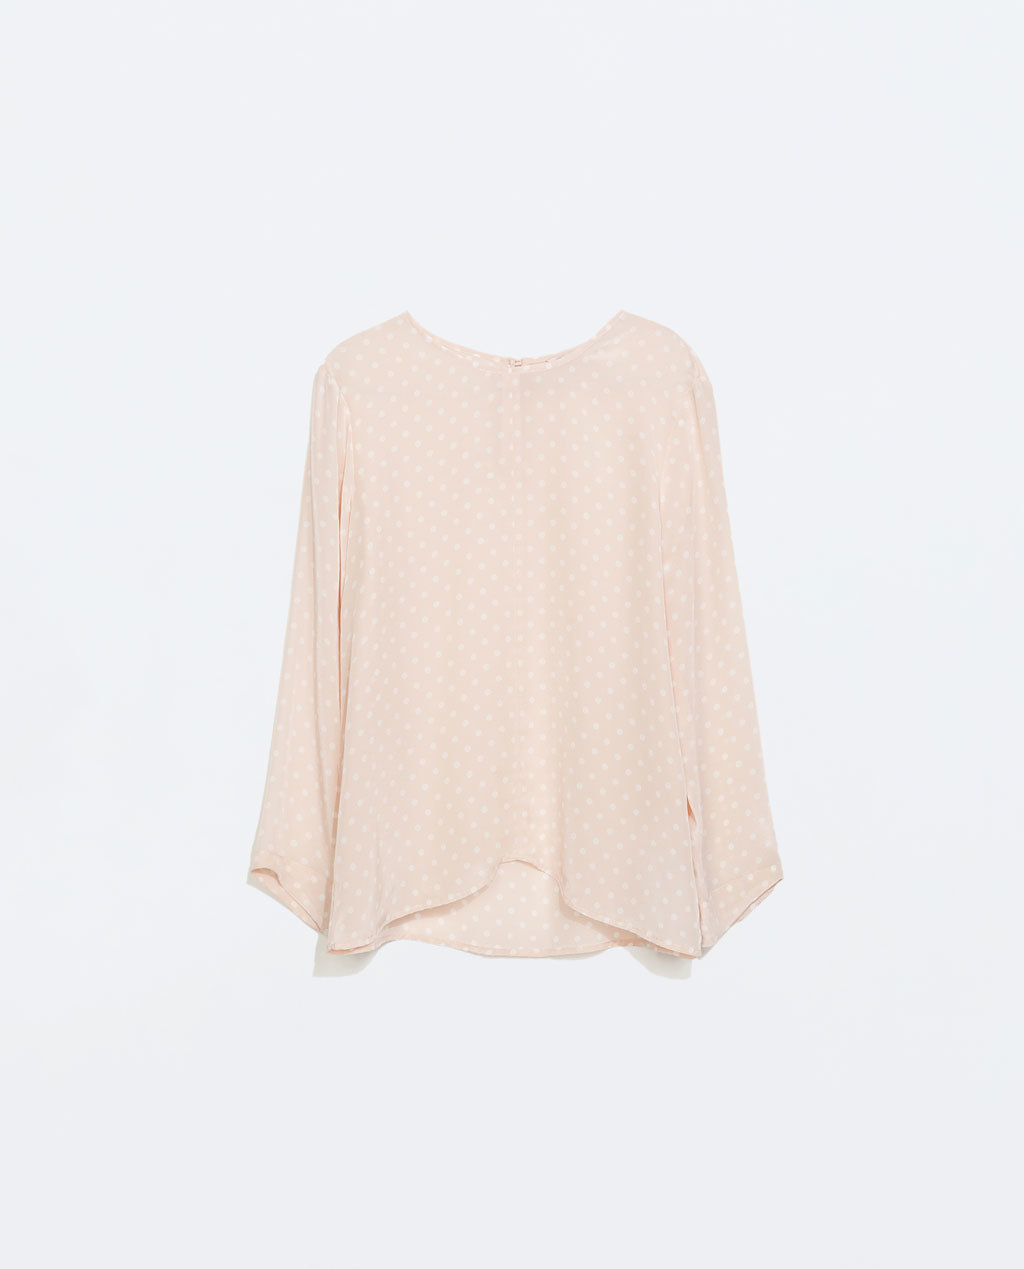 Polka Dot Silk Top - style: blouse; pattern: polka dot; secondary colour: white; predominant colour: blush; occasions: casual, creative work; length: standard; fibres: silk - 100%; fit: loose; neckline: crew; sleeve length: 3/4 length; sleeve style: standard; texture group: silky - light; pattern type: fabric; pattern size: light/subtle; season: a/w 2014